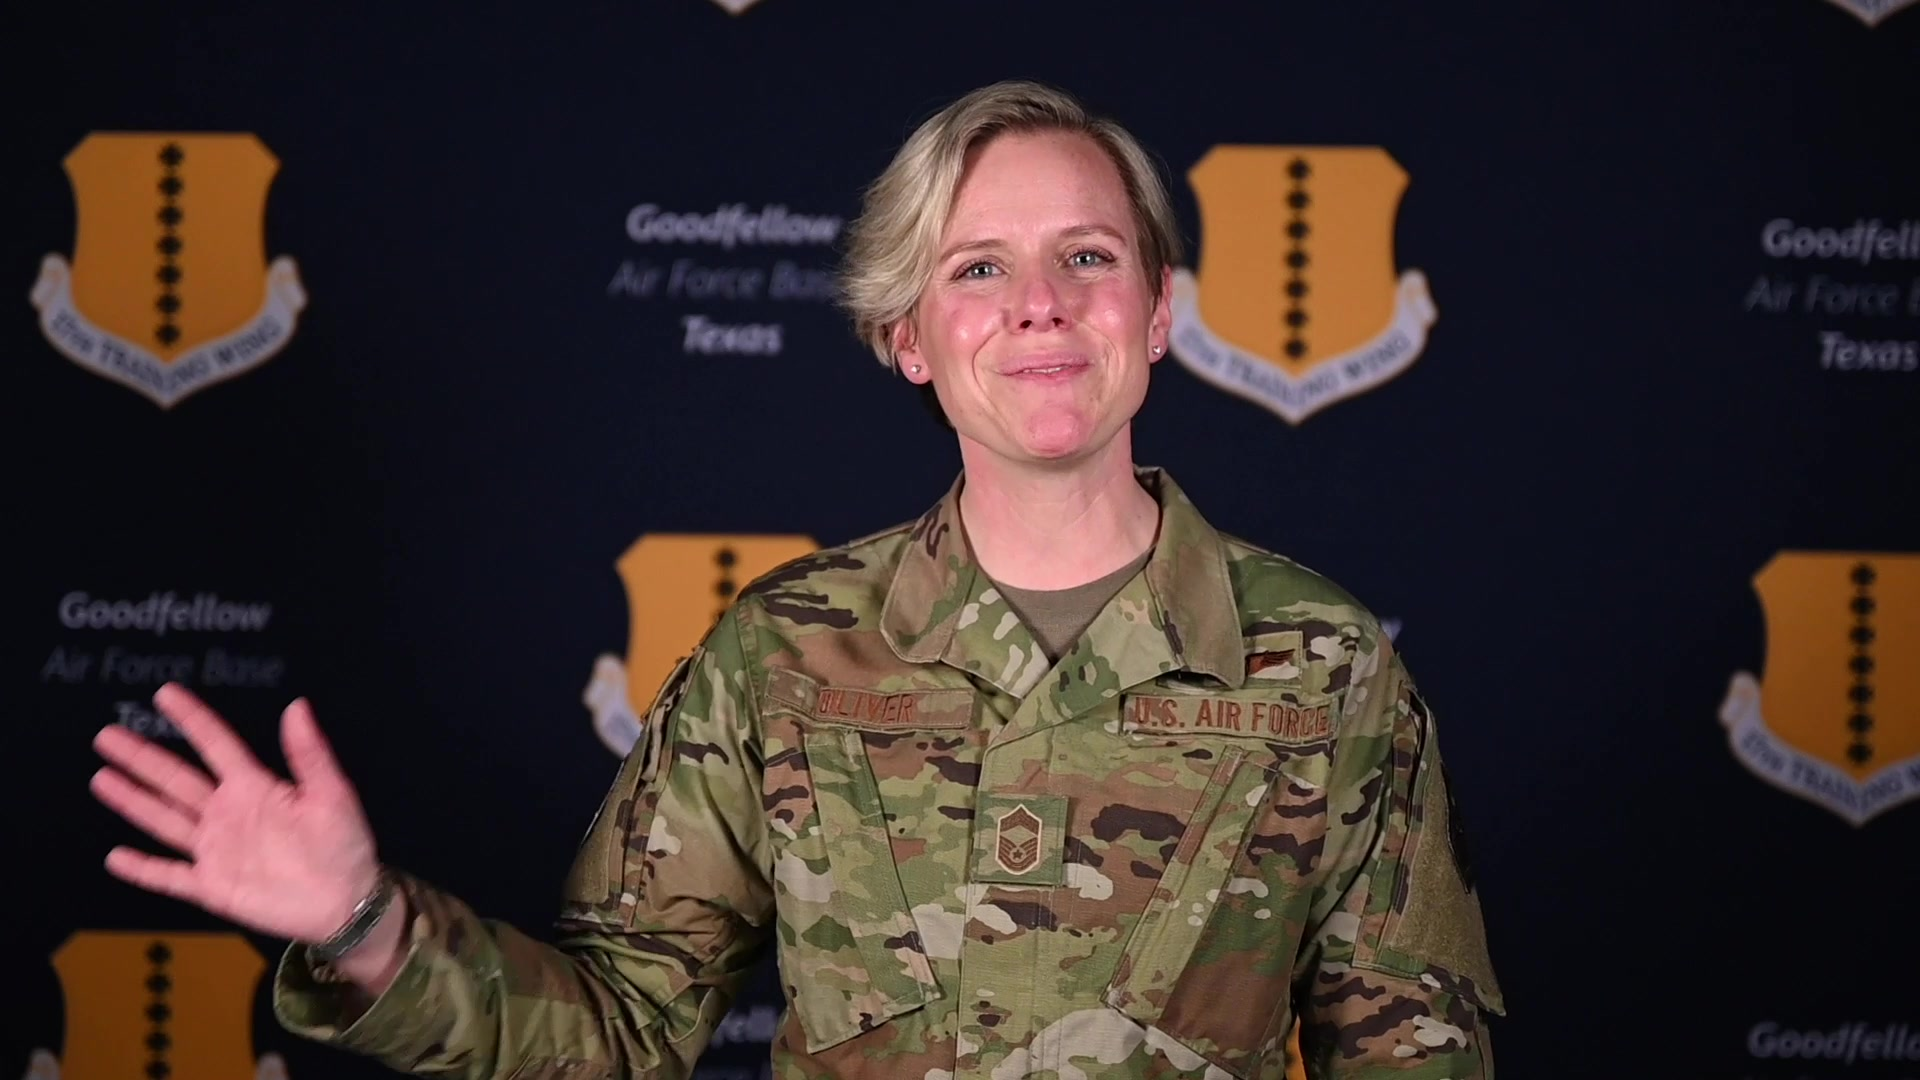 Meet Chief Master Sgt. Breana Oliver! She's the new superintendent for the 17th Training Group.